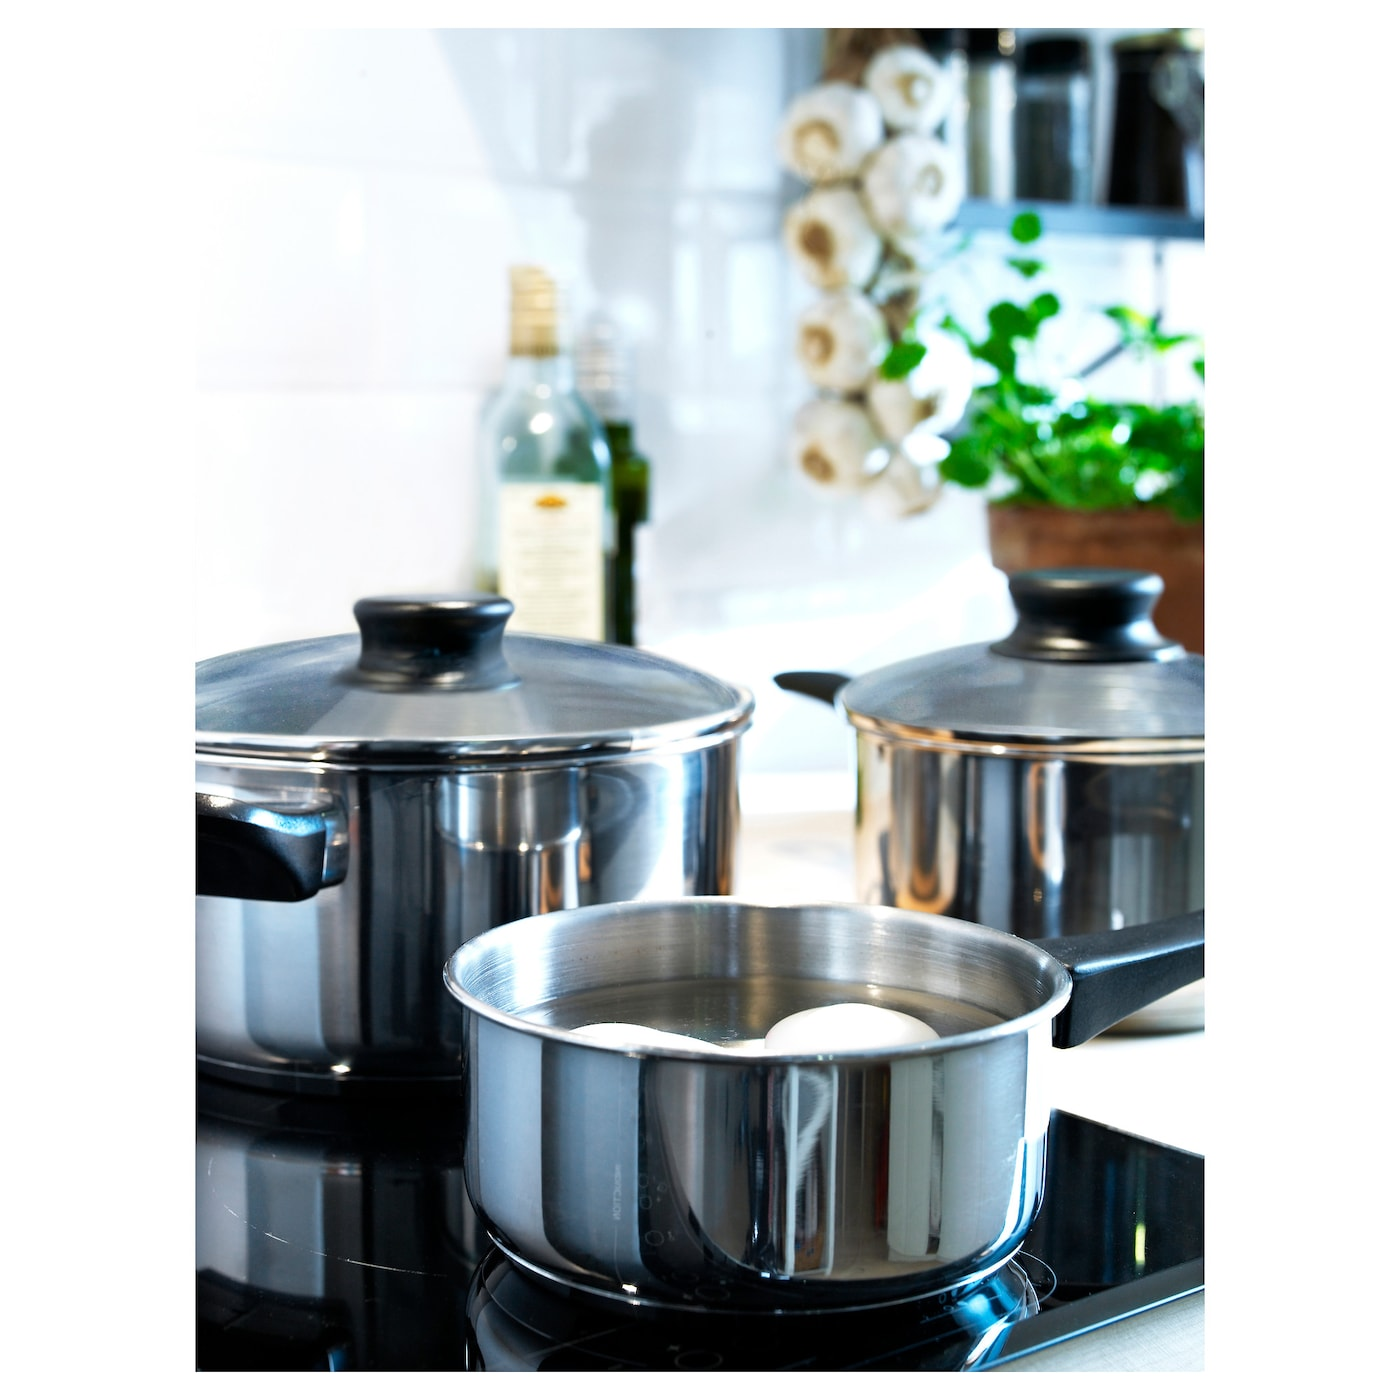 IKEA ANNONS 5-piece cookware set Works well on all types of hobs, including induction hob.